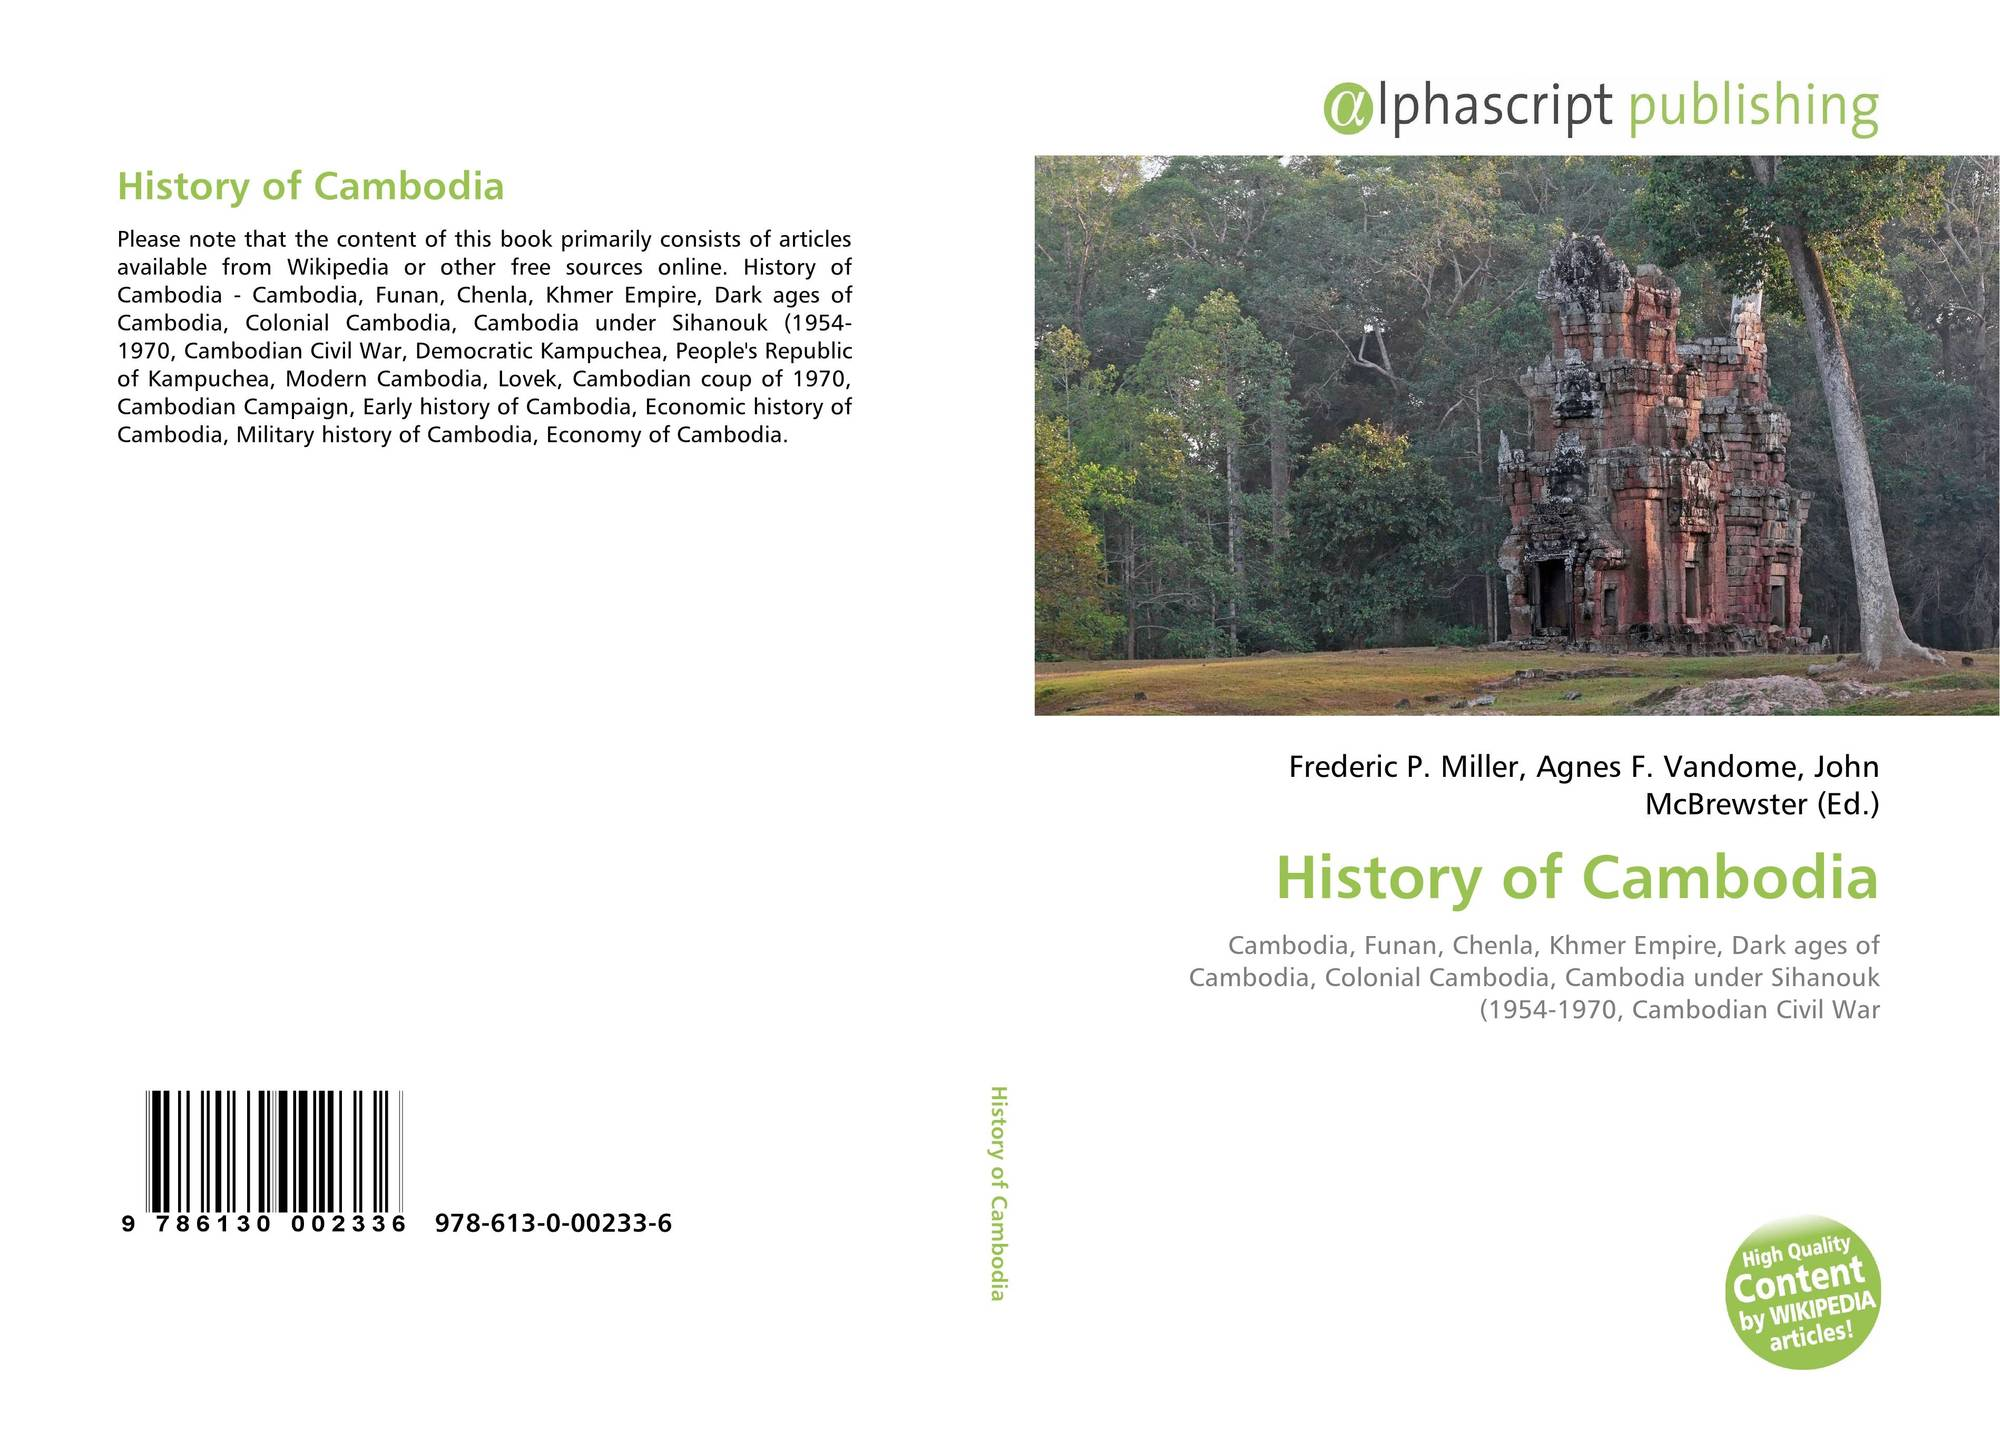 history of cambodia essay Cambodia 1900-1945 history essay paper 2-page paper on cambodia 1900-1945 this is a very short (2 page) paper for a class on southeast asian history.